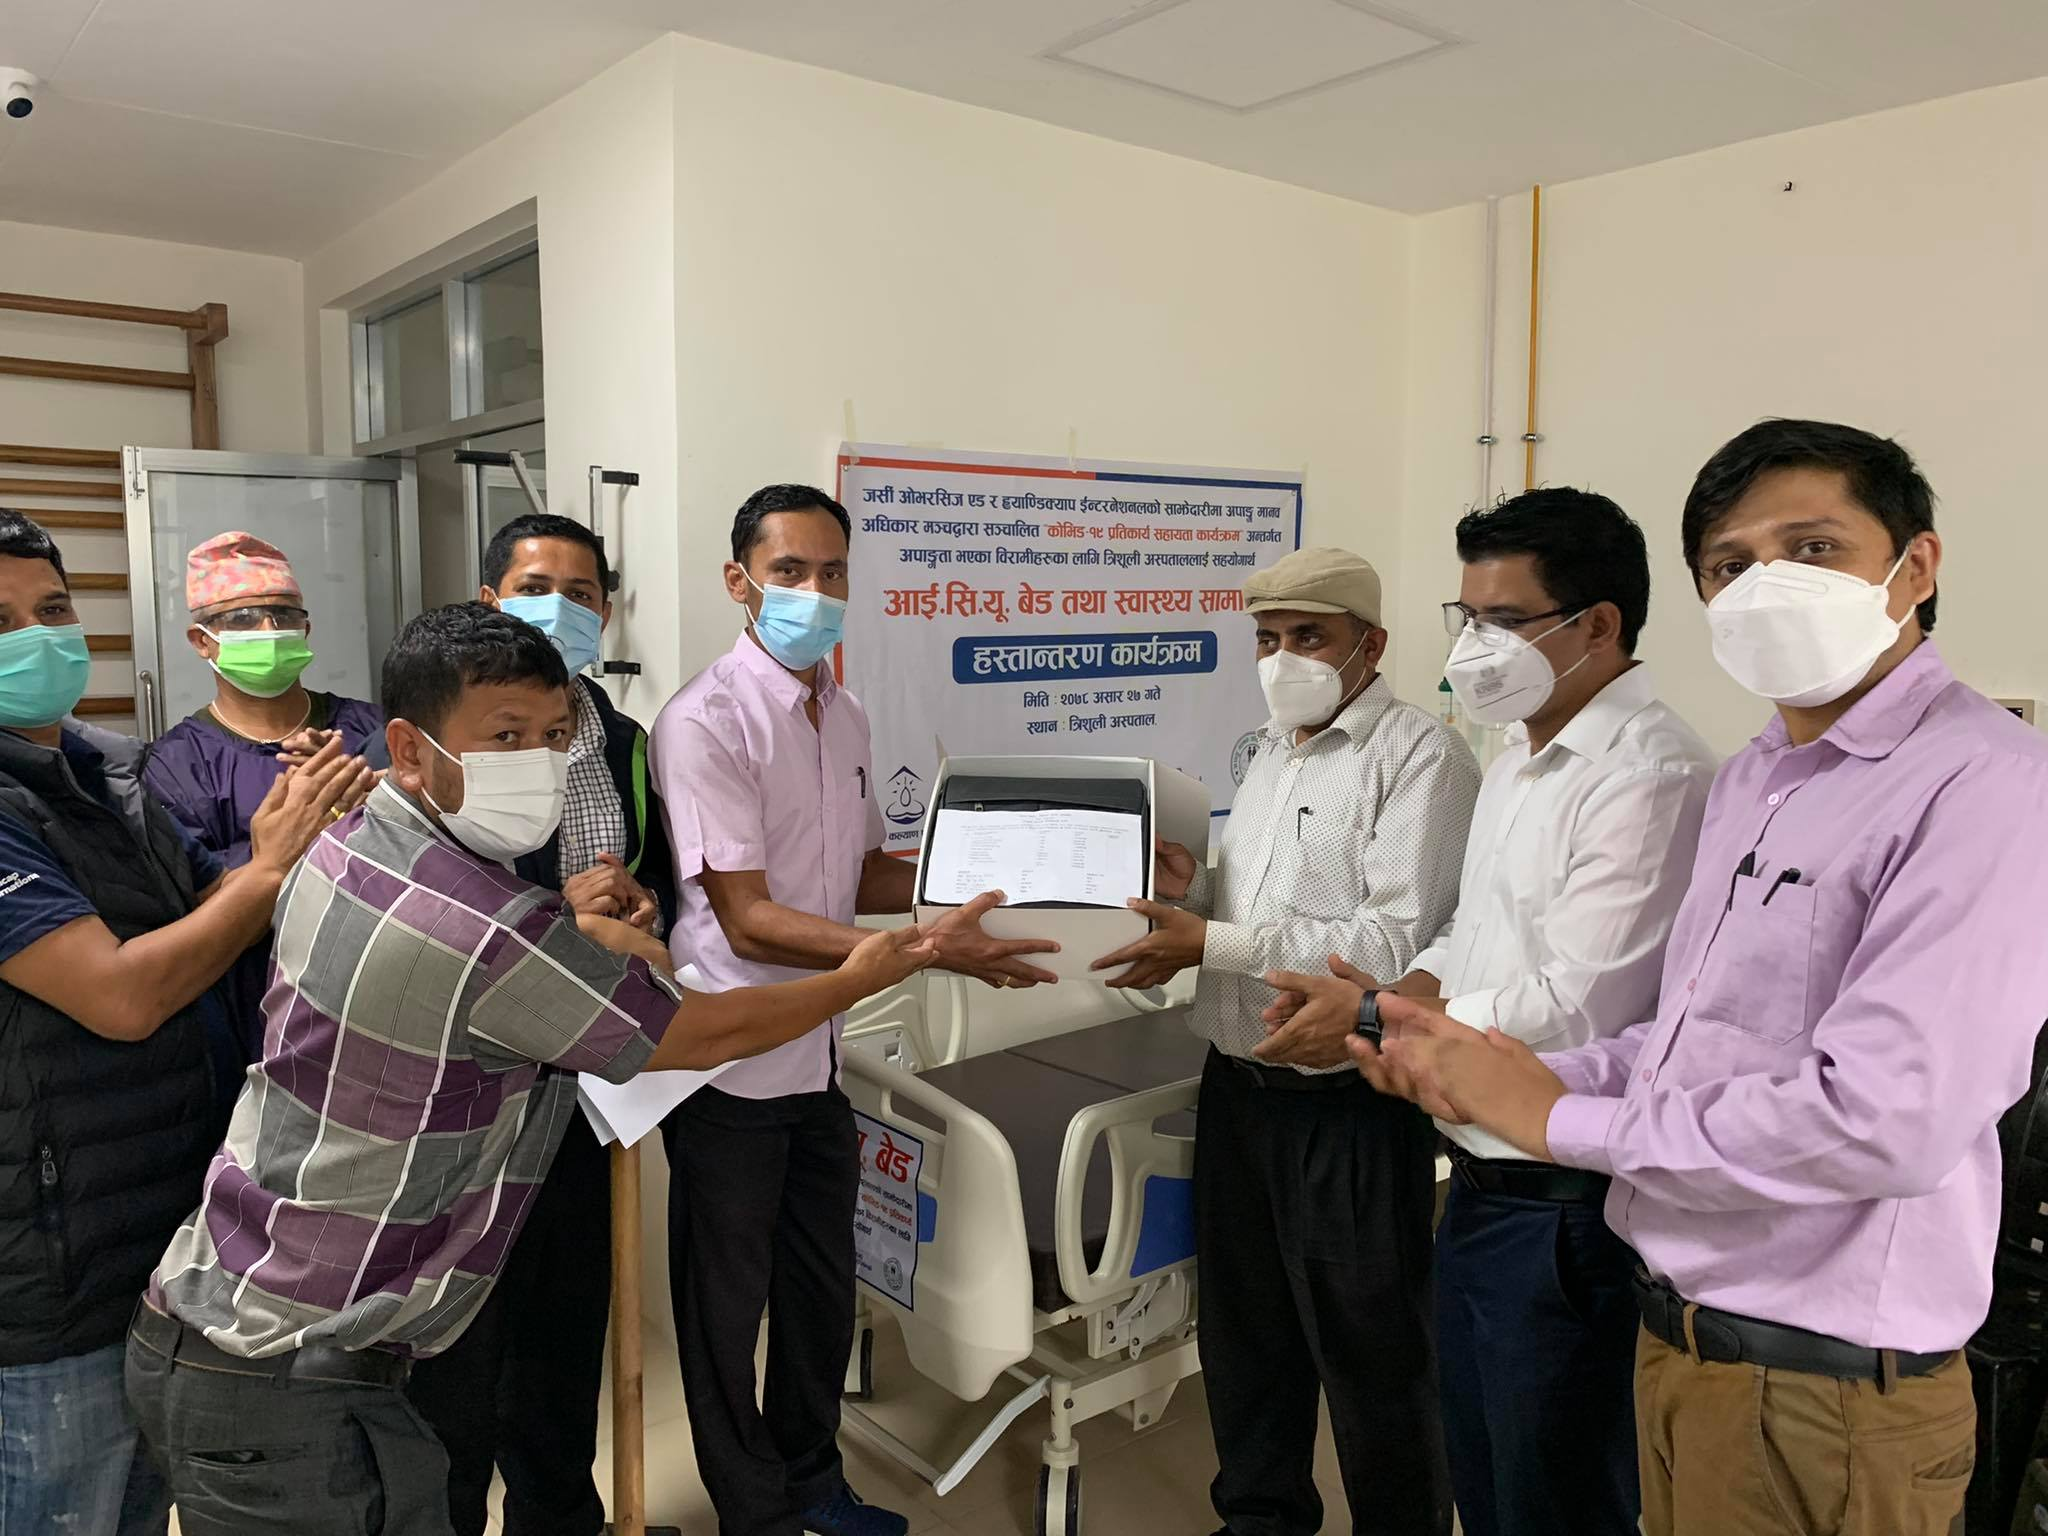 dhrf electrical icu bed handover to trishul hospital